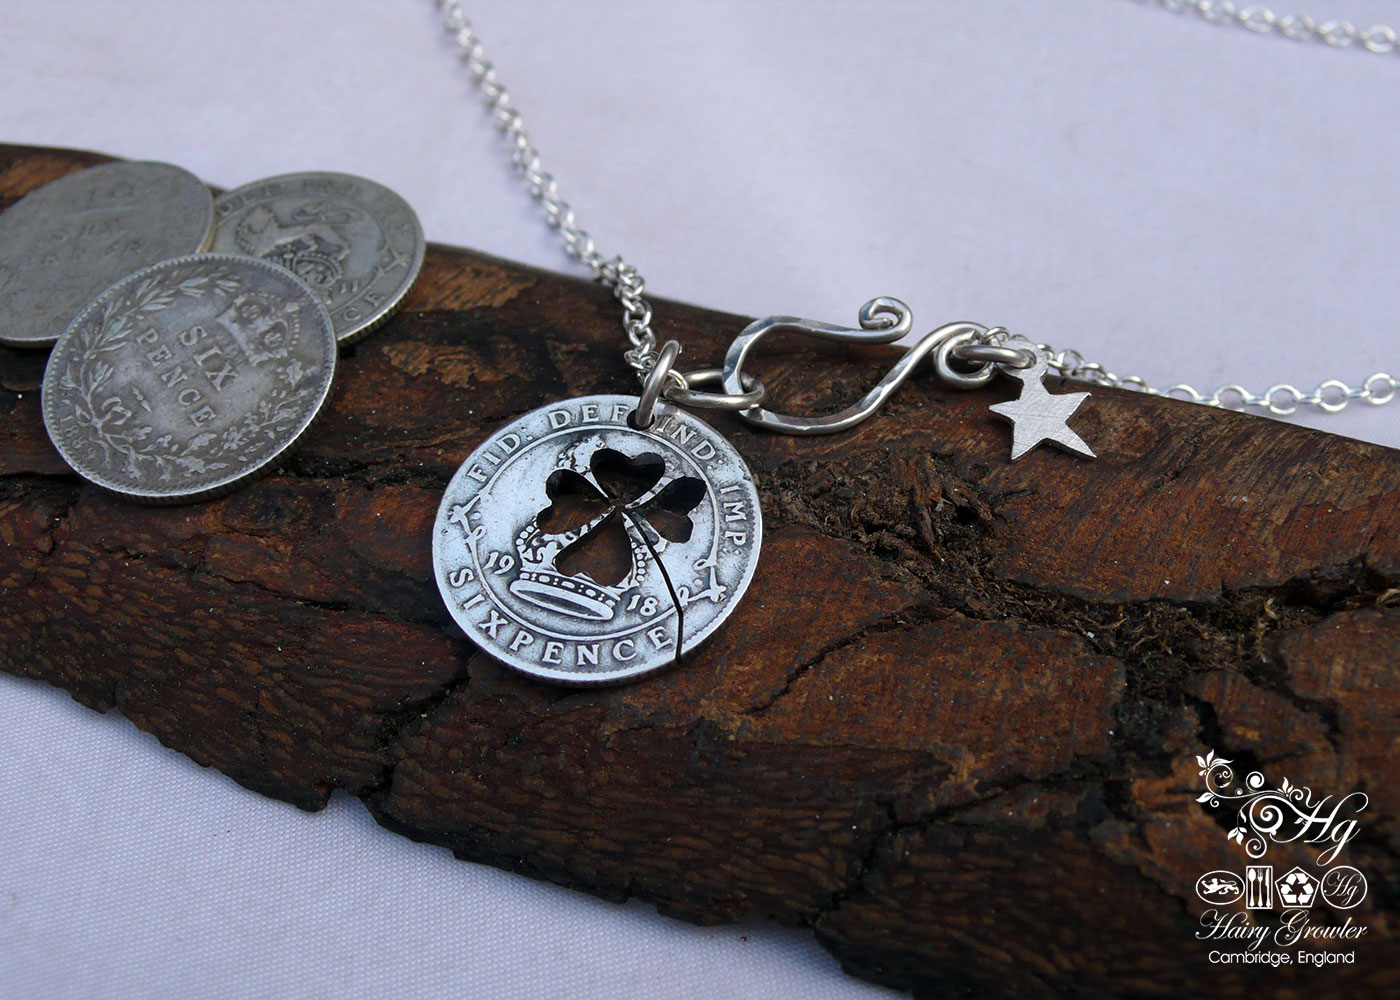 Handcrafted and recycled lucky silver sixpence coin necklace pendant